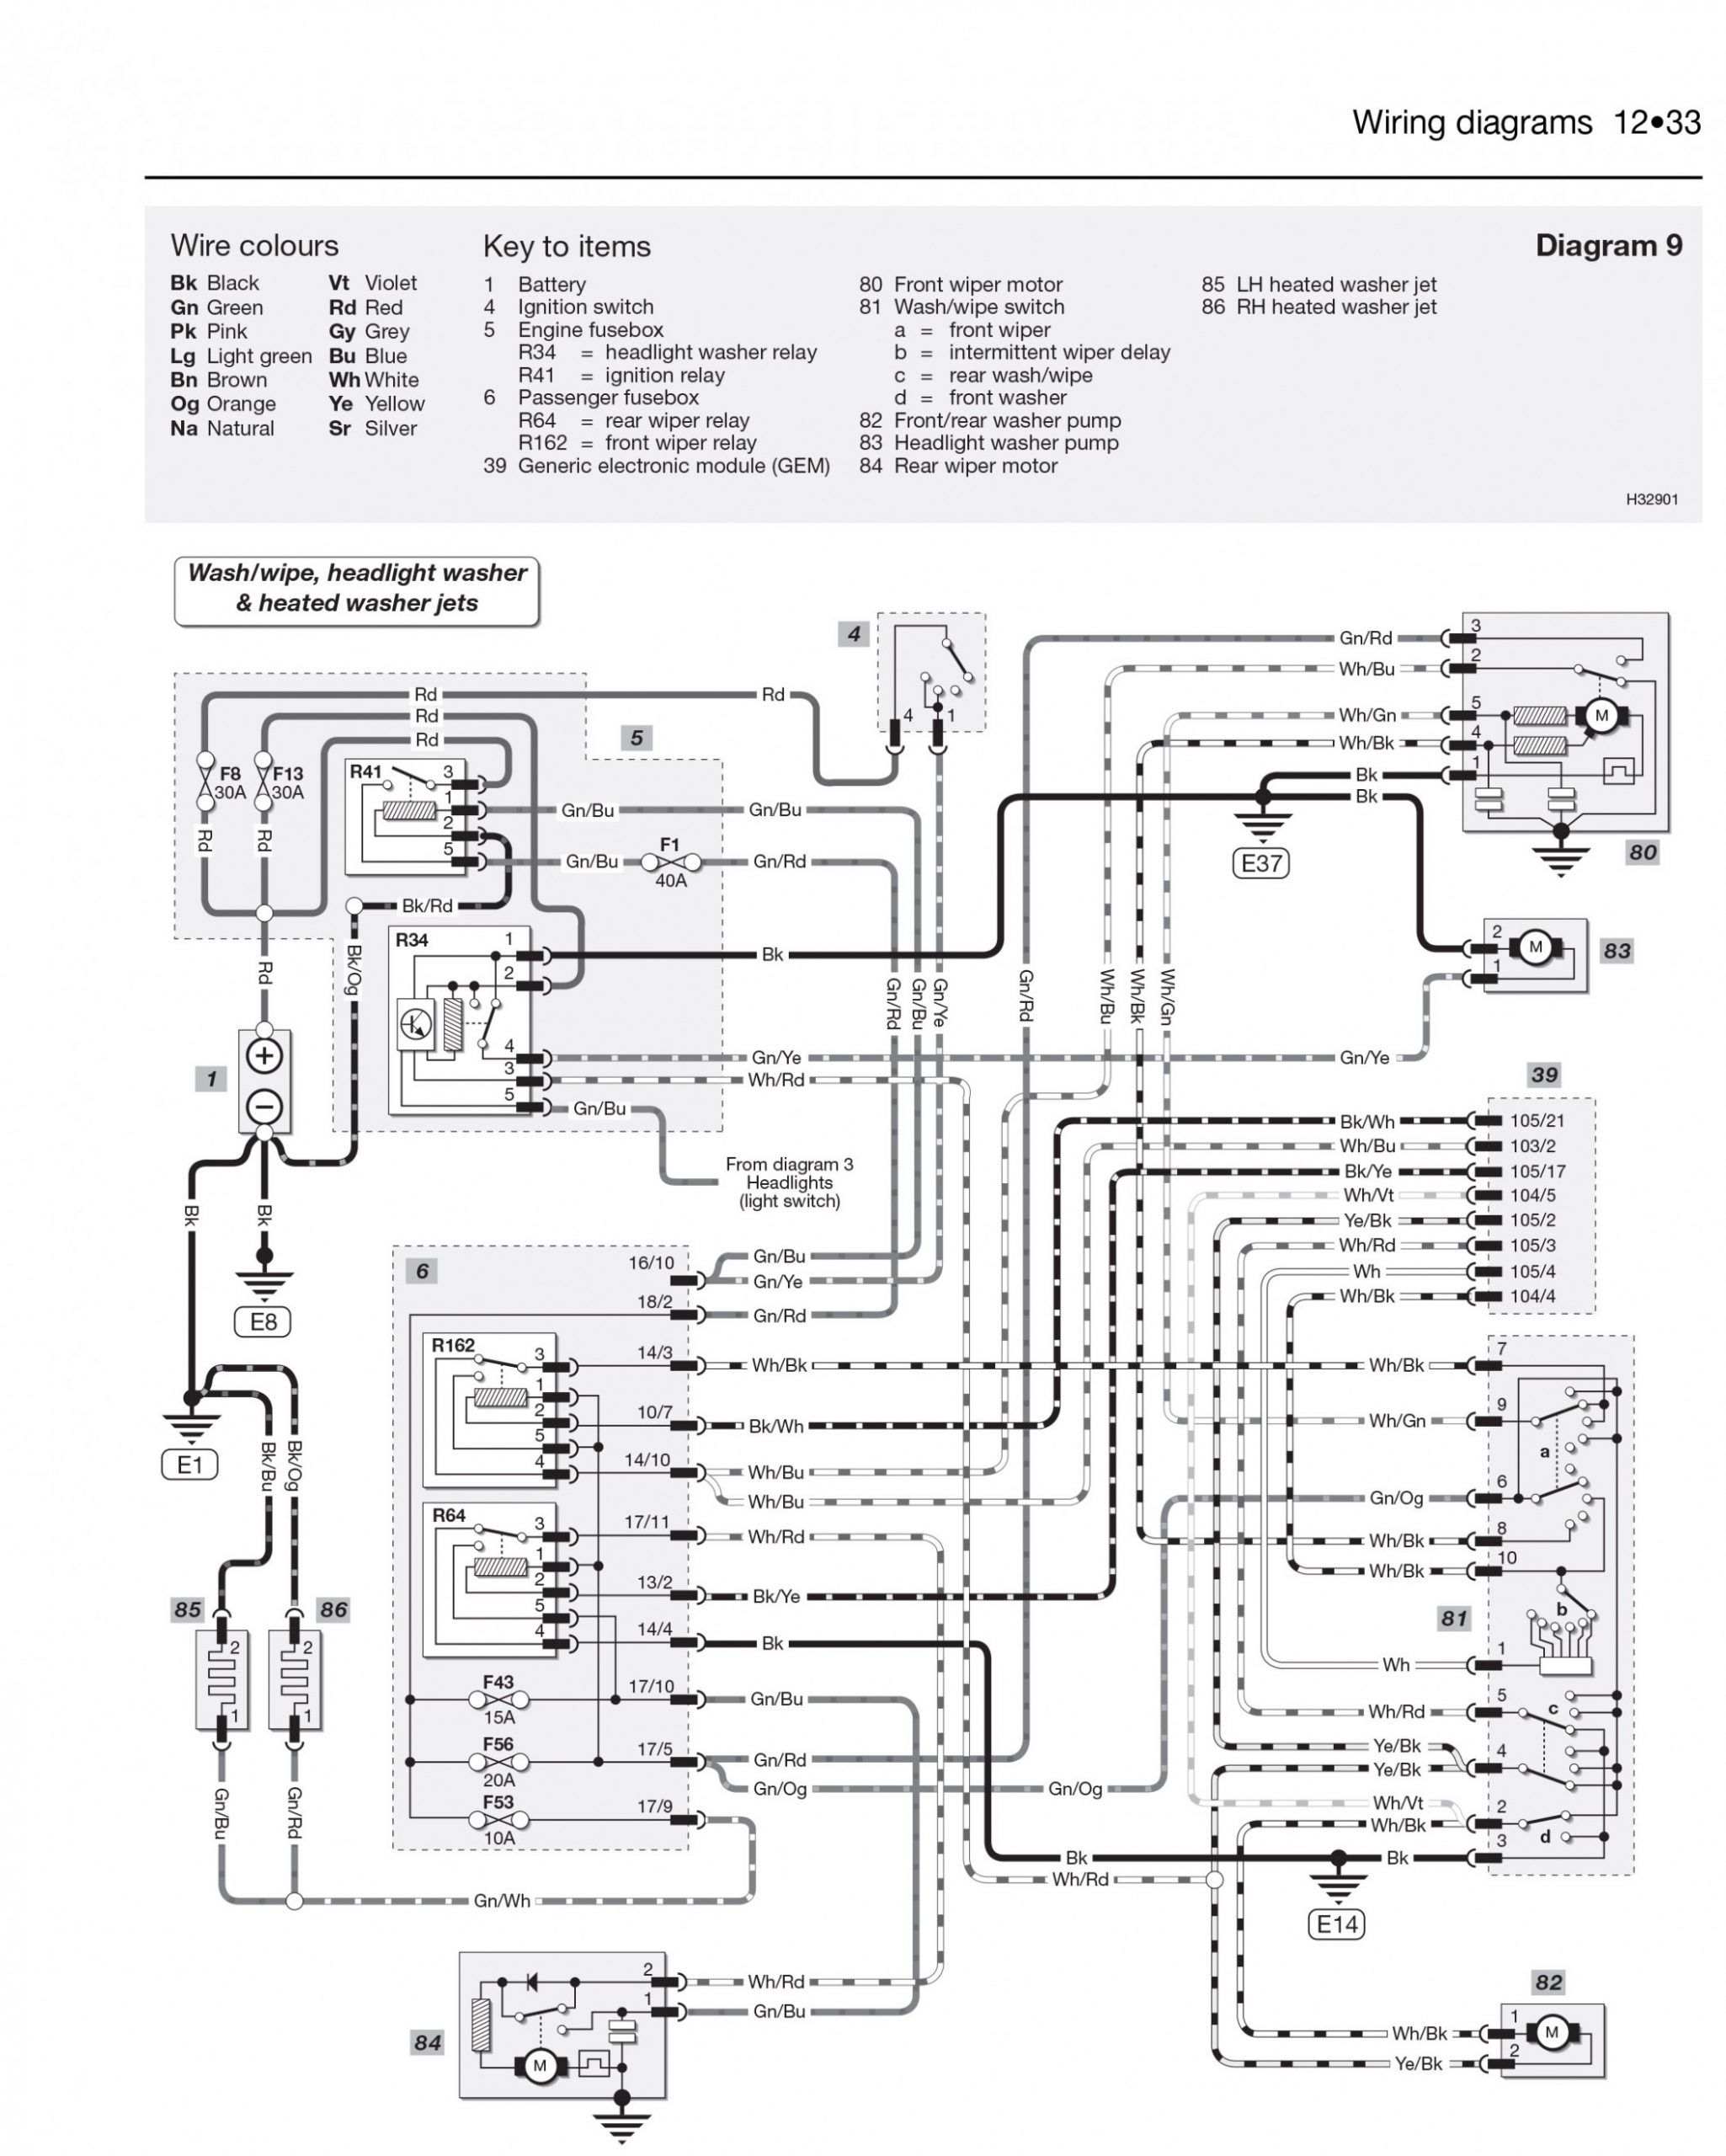 Ford Focus 1 6 Tdci 2007 Wiring Diagram